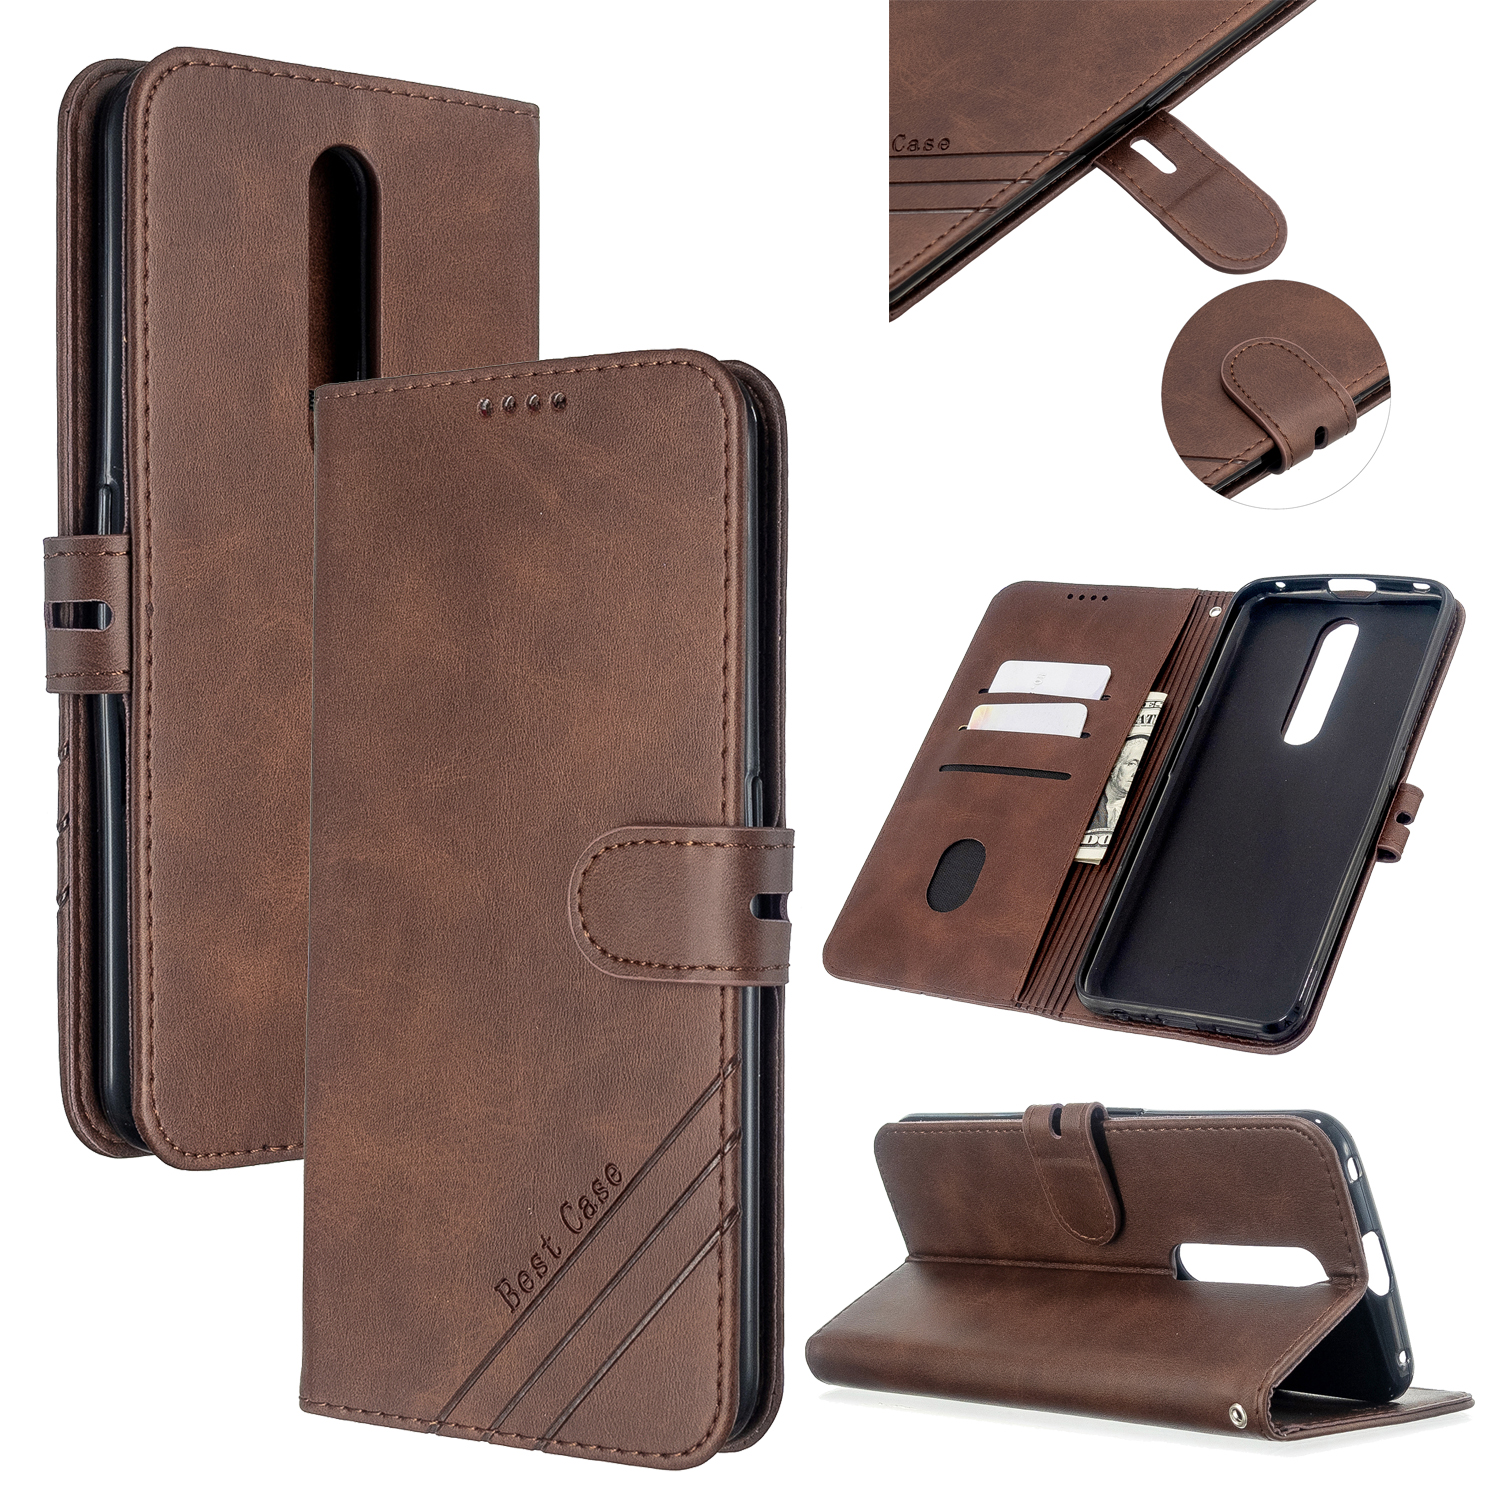 For OPPO F11/F11 Pro Case Soft Leather Cover with Denim Texture Precise Cutouts Wallet Design Buckle Closure Smartphone Shell  brown